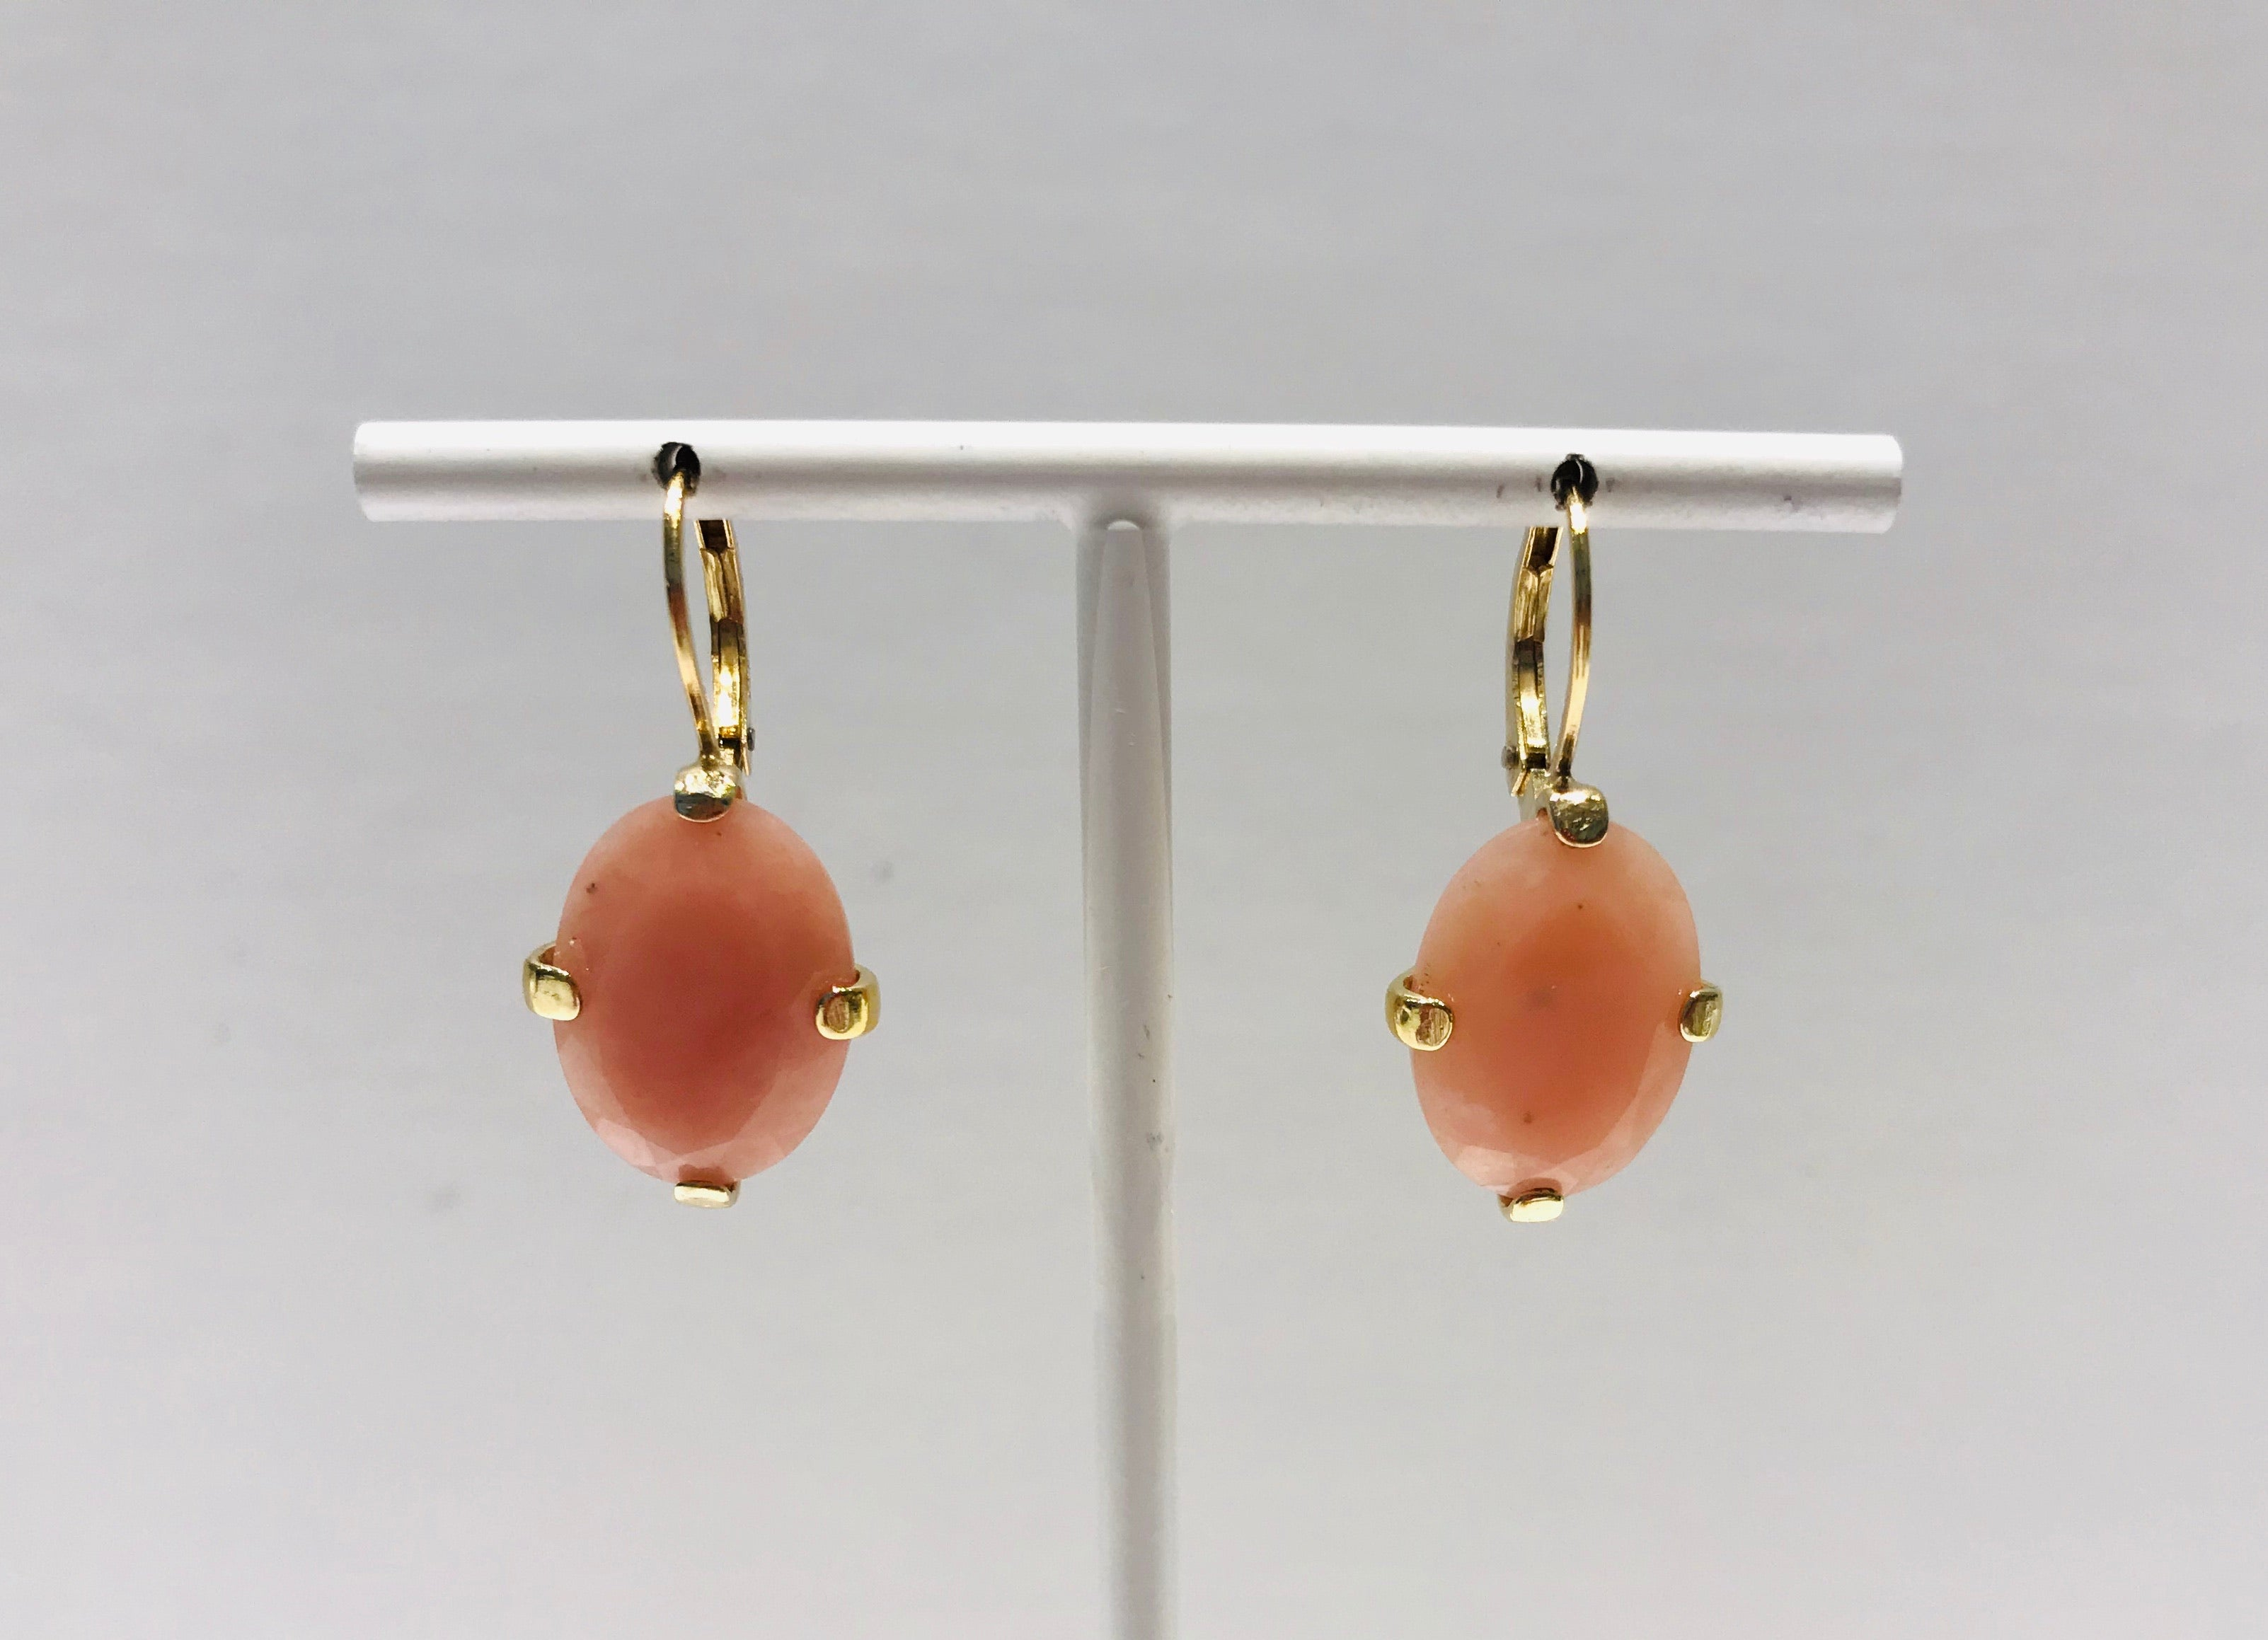 Wouters & Hendrix leverbacks earrings with pink opal